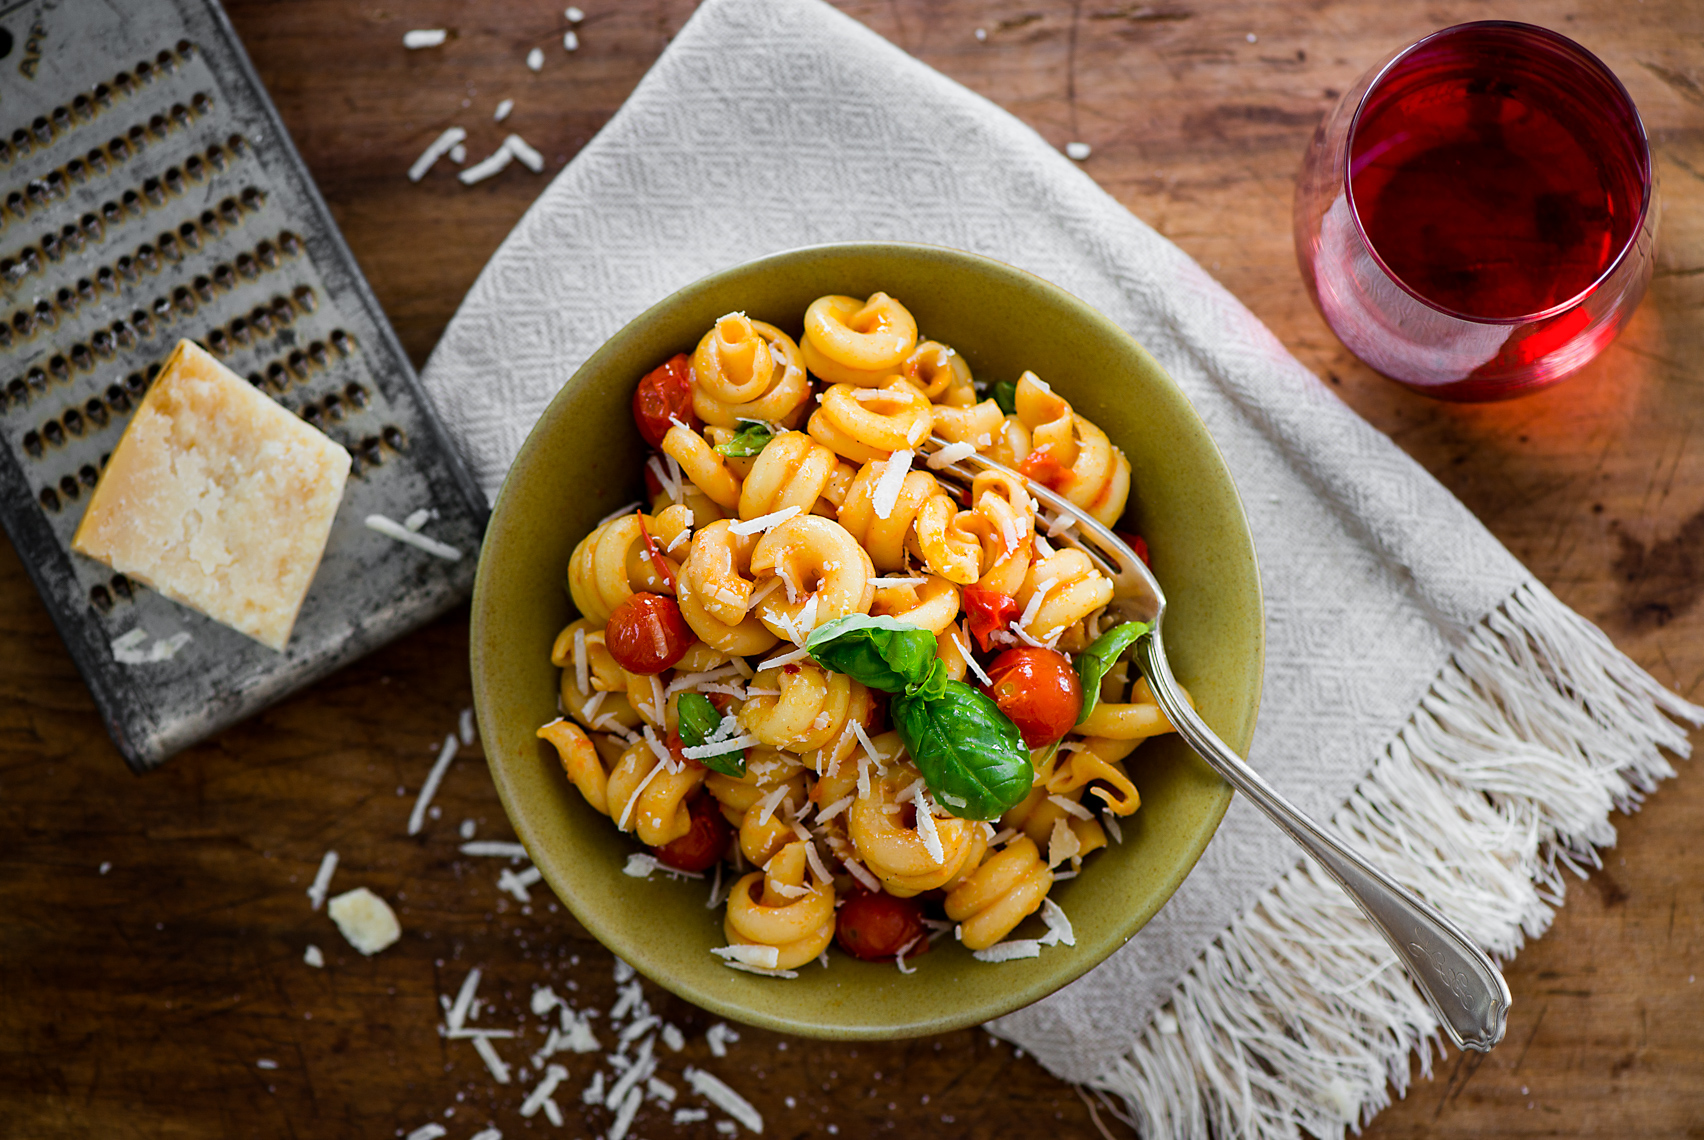 Travel + Food Photographer, Kristina Krug, based in Nashville shooting in the South, Southeast, Midwest, Kentucky, Louisiana, Misourri, South Carolina, North Carolina, Texas, Indiana, Illinois. Heriloom tomato five minute pasta sauce with wine. Still life photography.